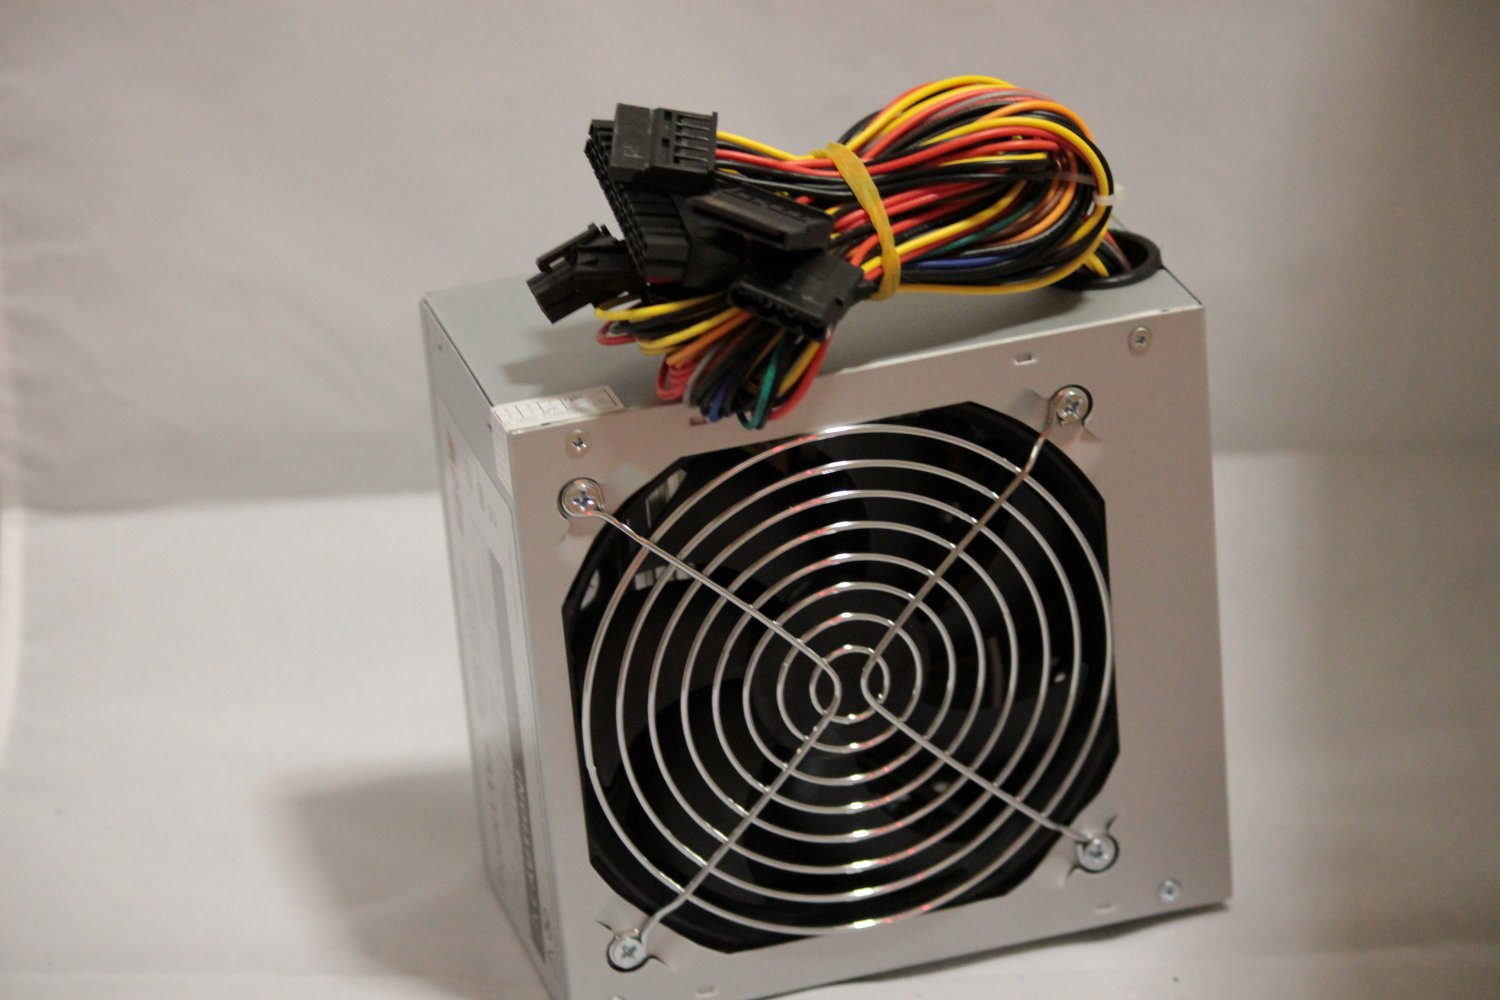 New PC Power Supply Upgrade for HP Pavilion  a808x Desktop Computer